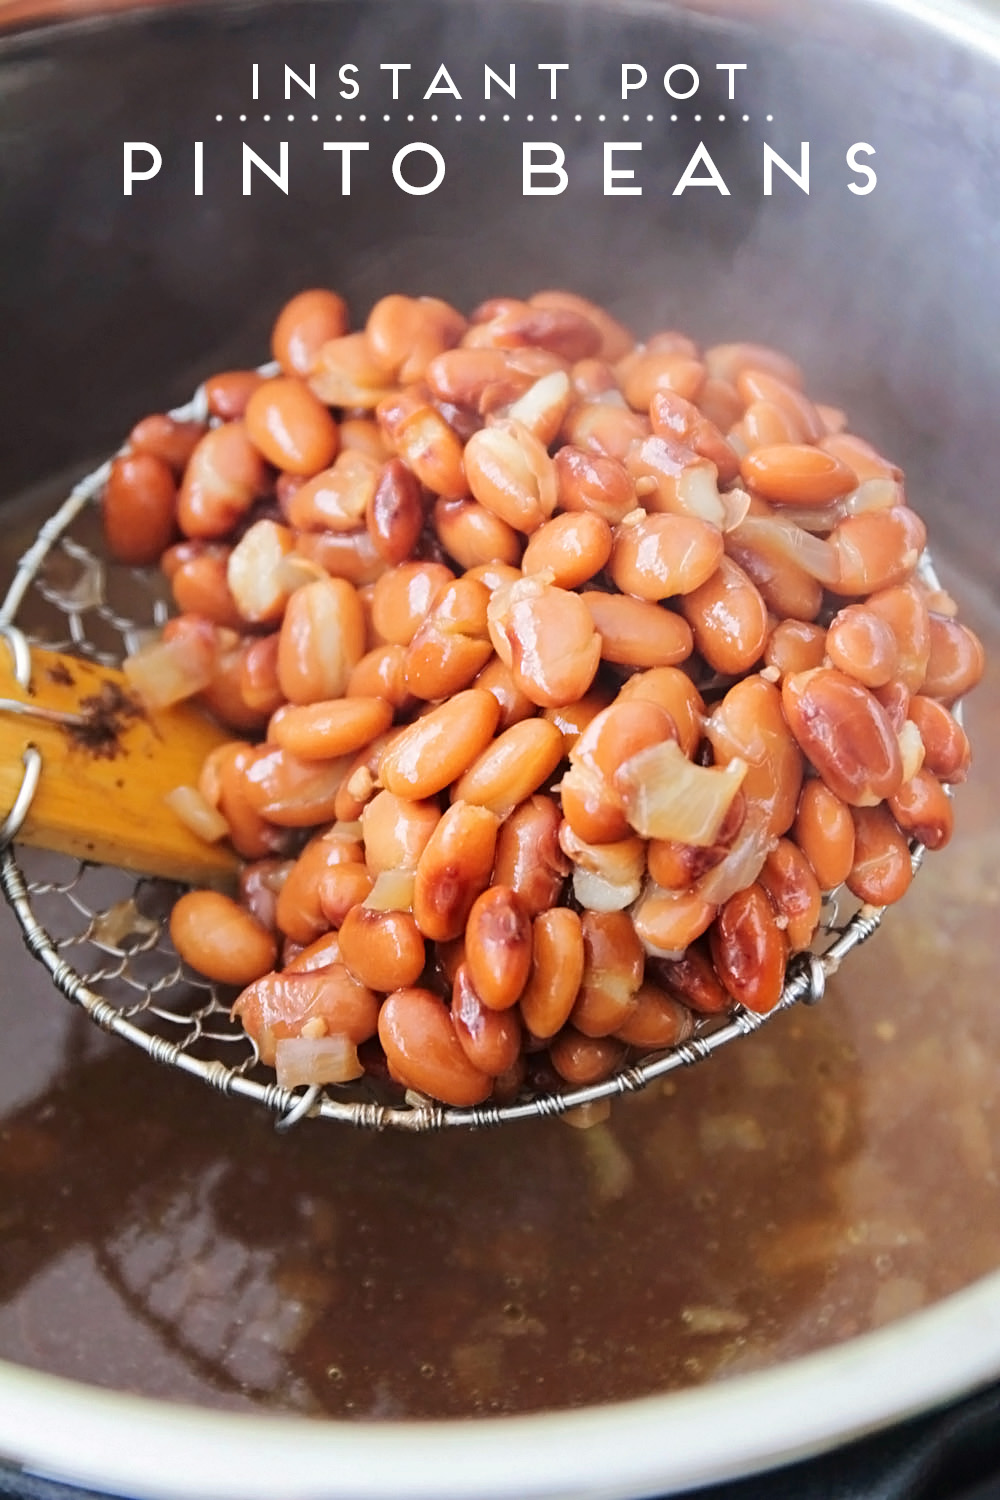 These delicious Instant Pot pinto beans are so easy to make, and make amazing refried beans too!